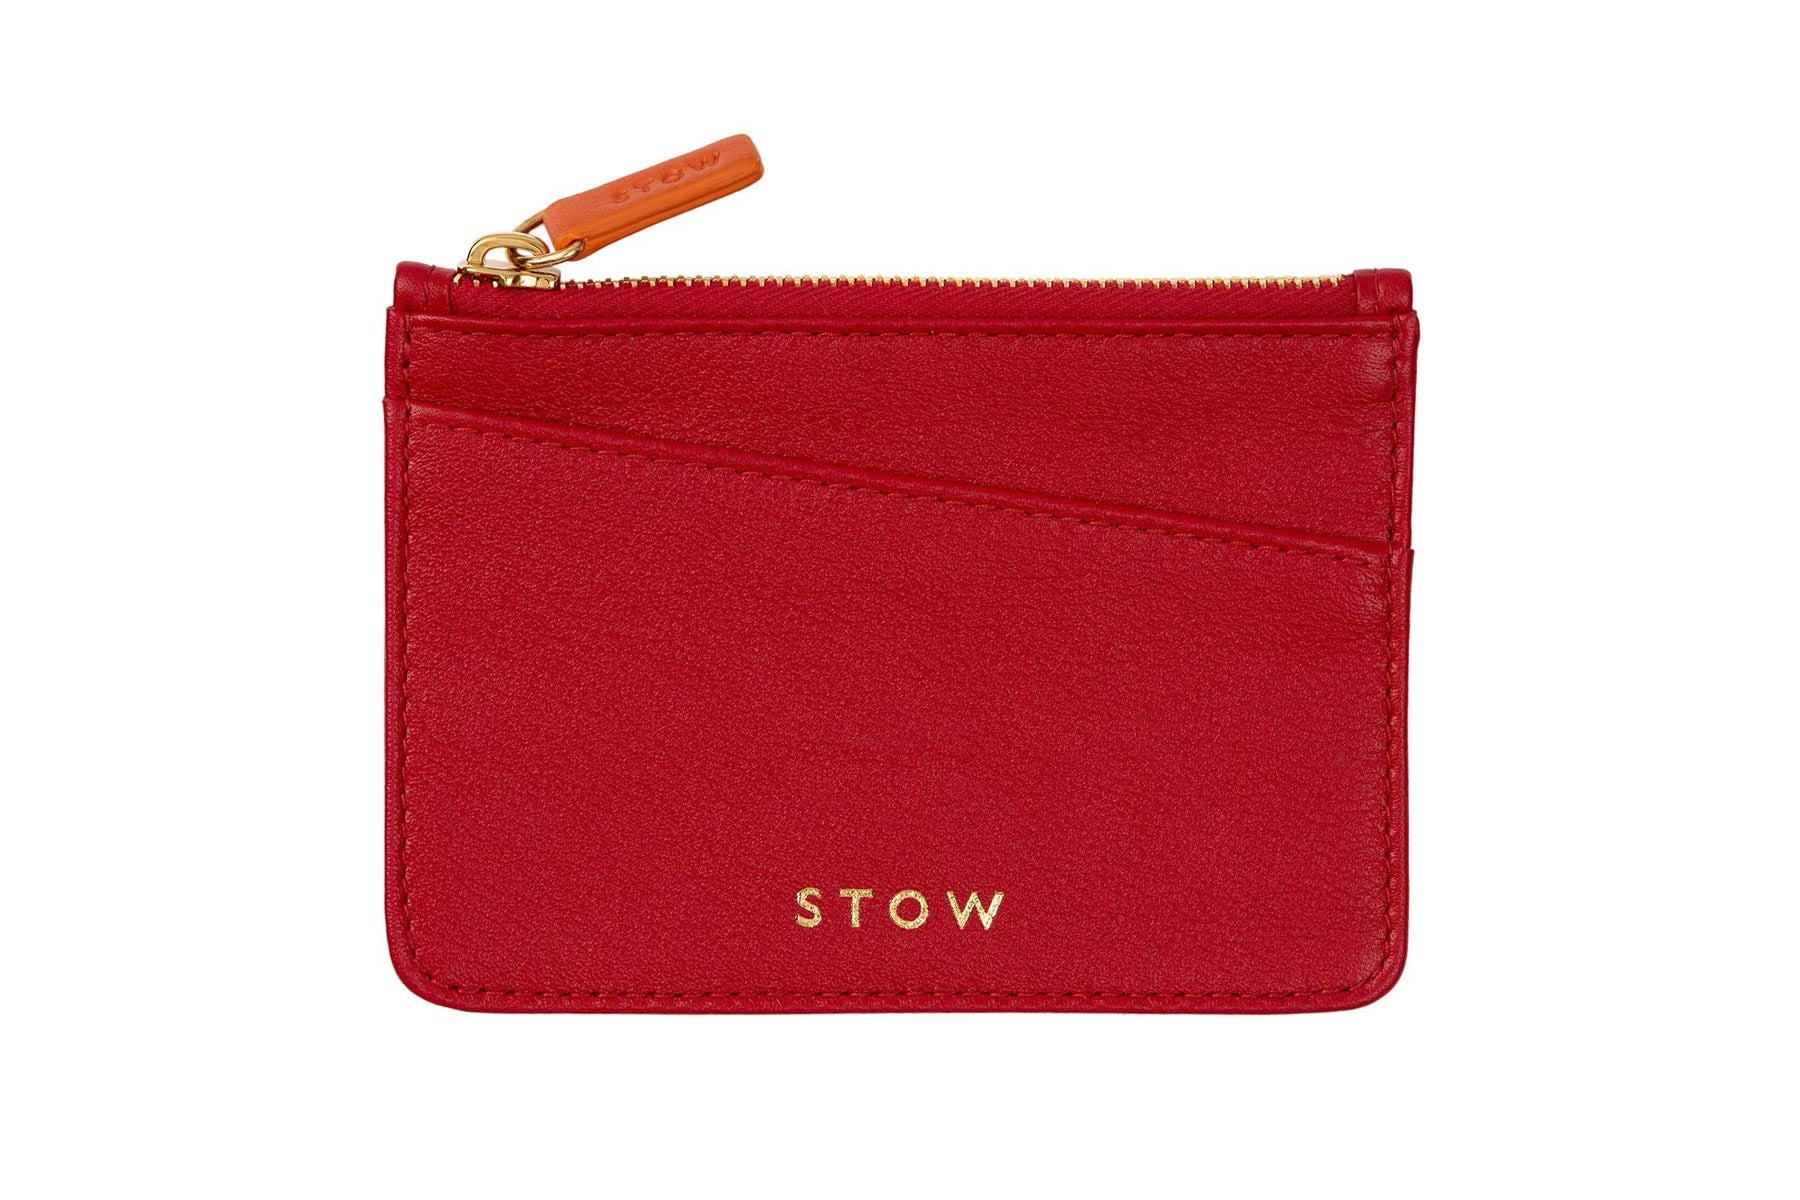 STOW Red Leather Coin Purse